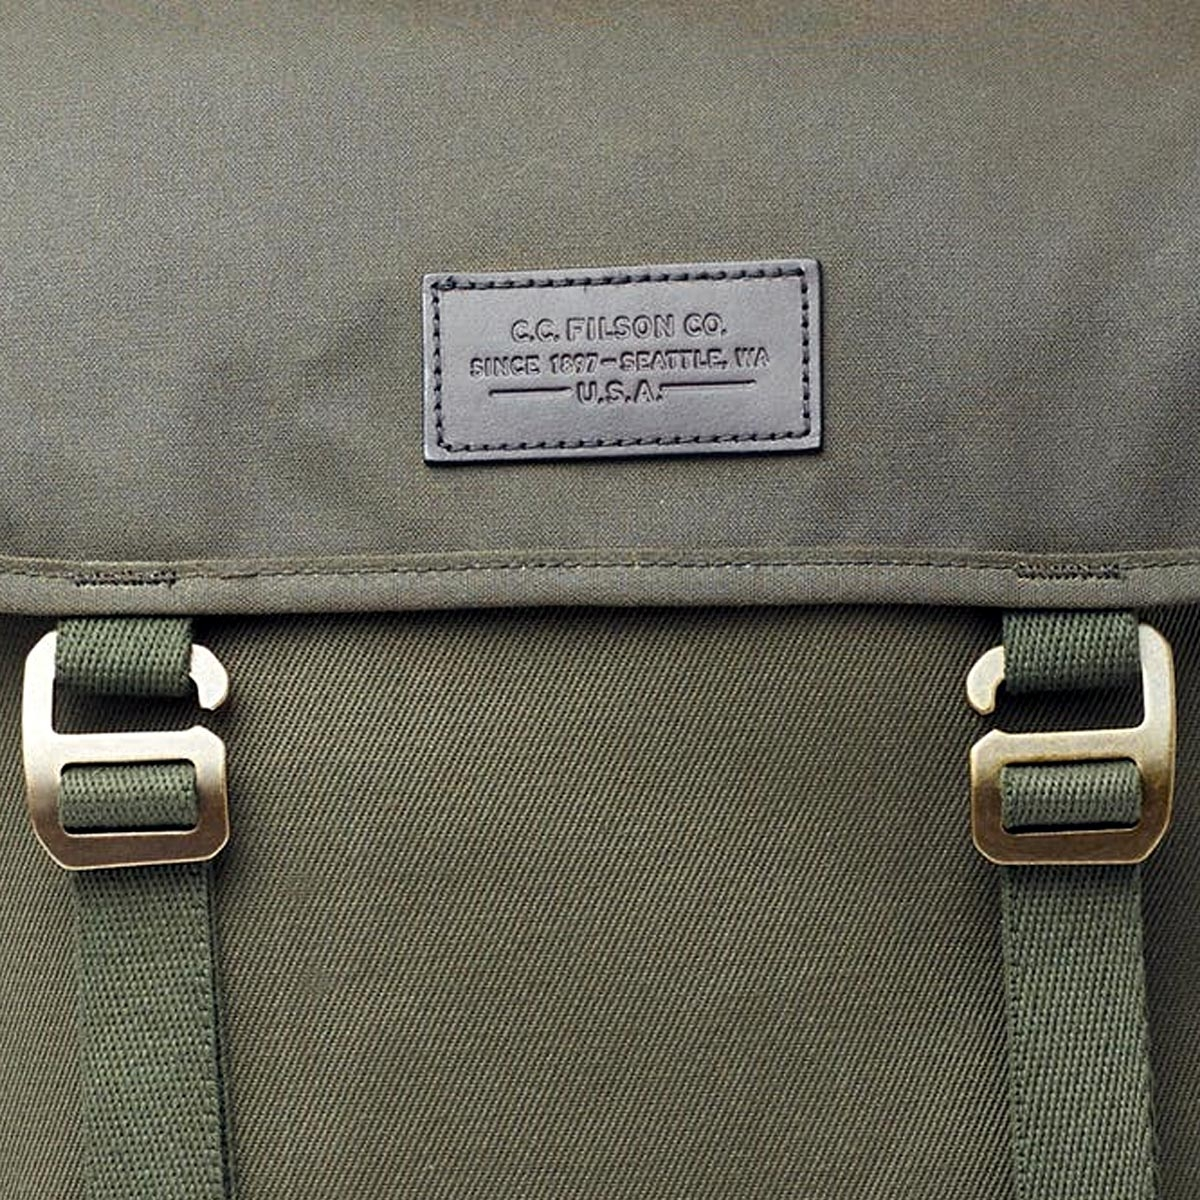 Filson Ranger Backpack 20137828 Otter Green extraordinary bag for an ordinary day